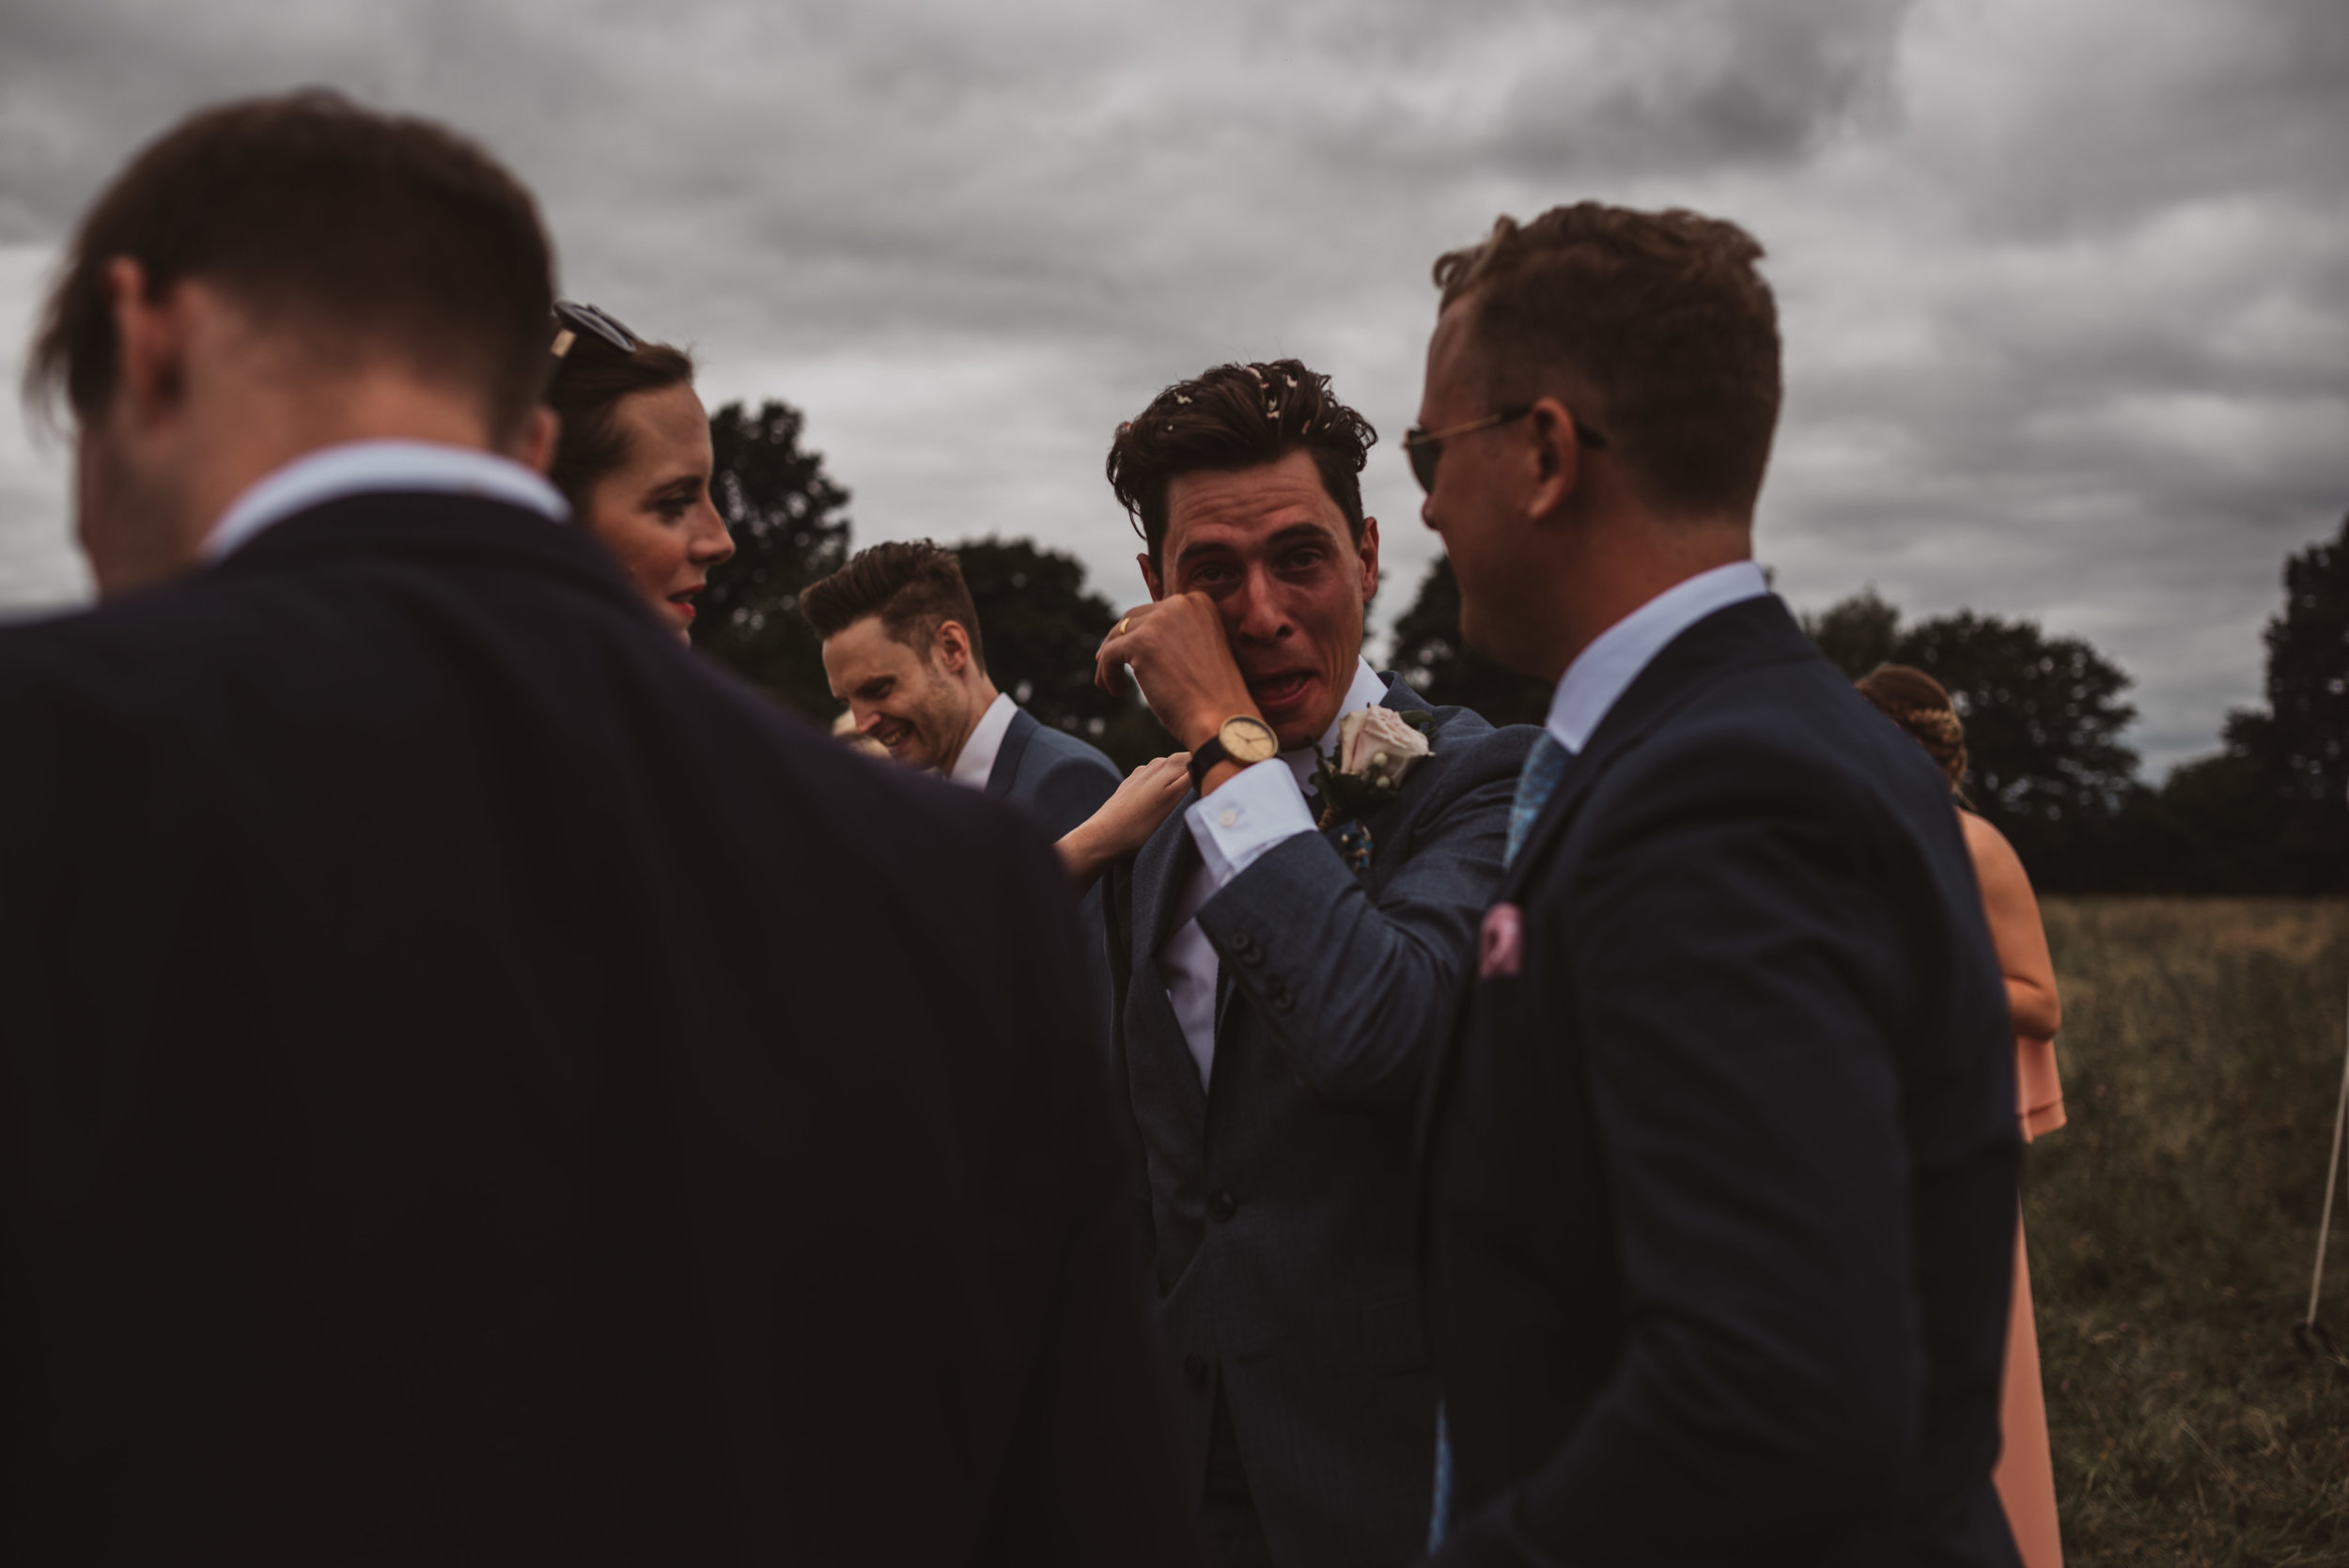 untraditional alternative north wales tipi wedding (90 of 145).jpg